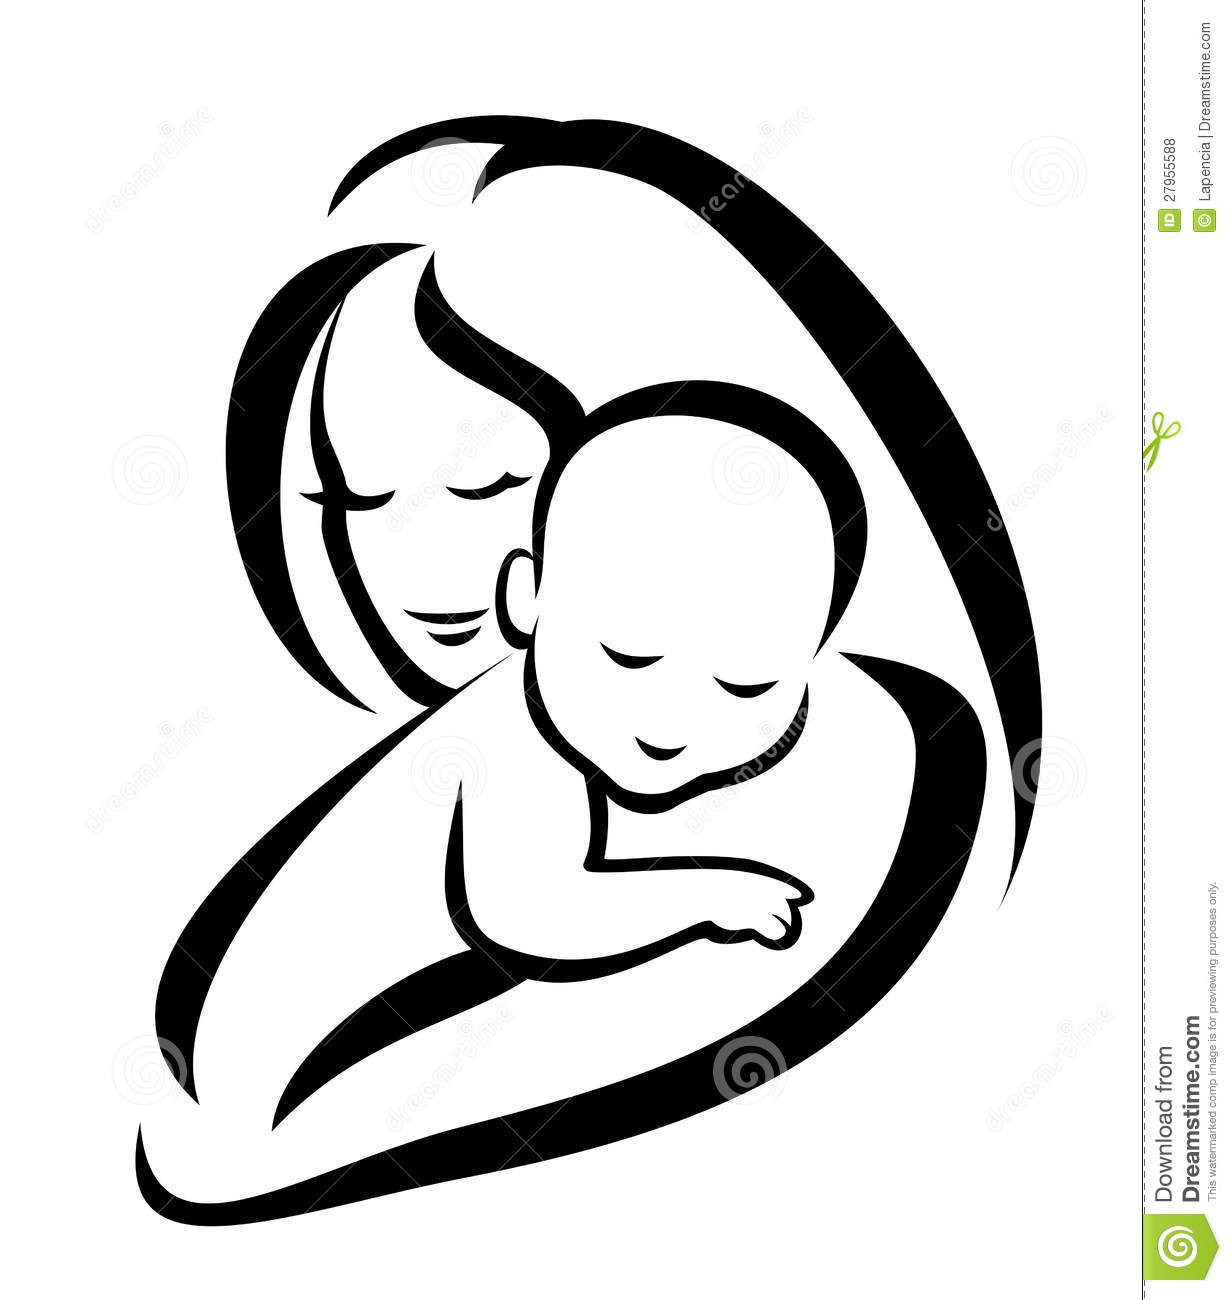 Mama und baby clipart jpg freeuse Clipart mama - ClipartFest jpg freeuse